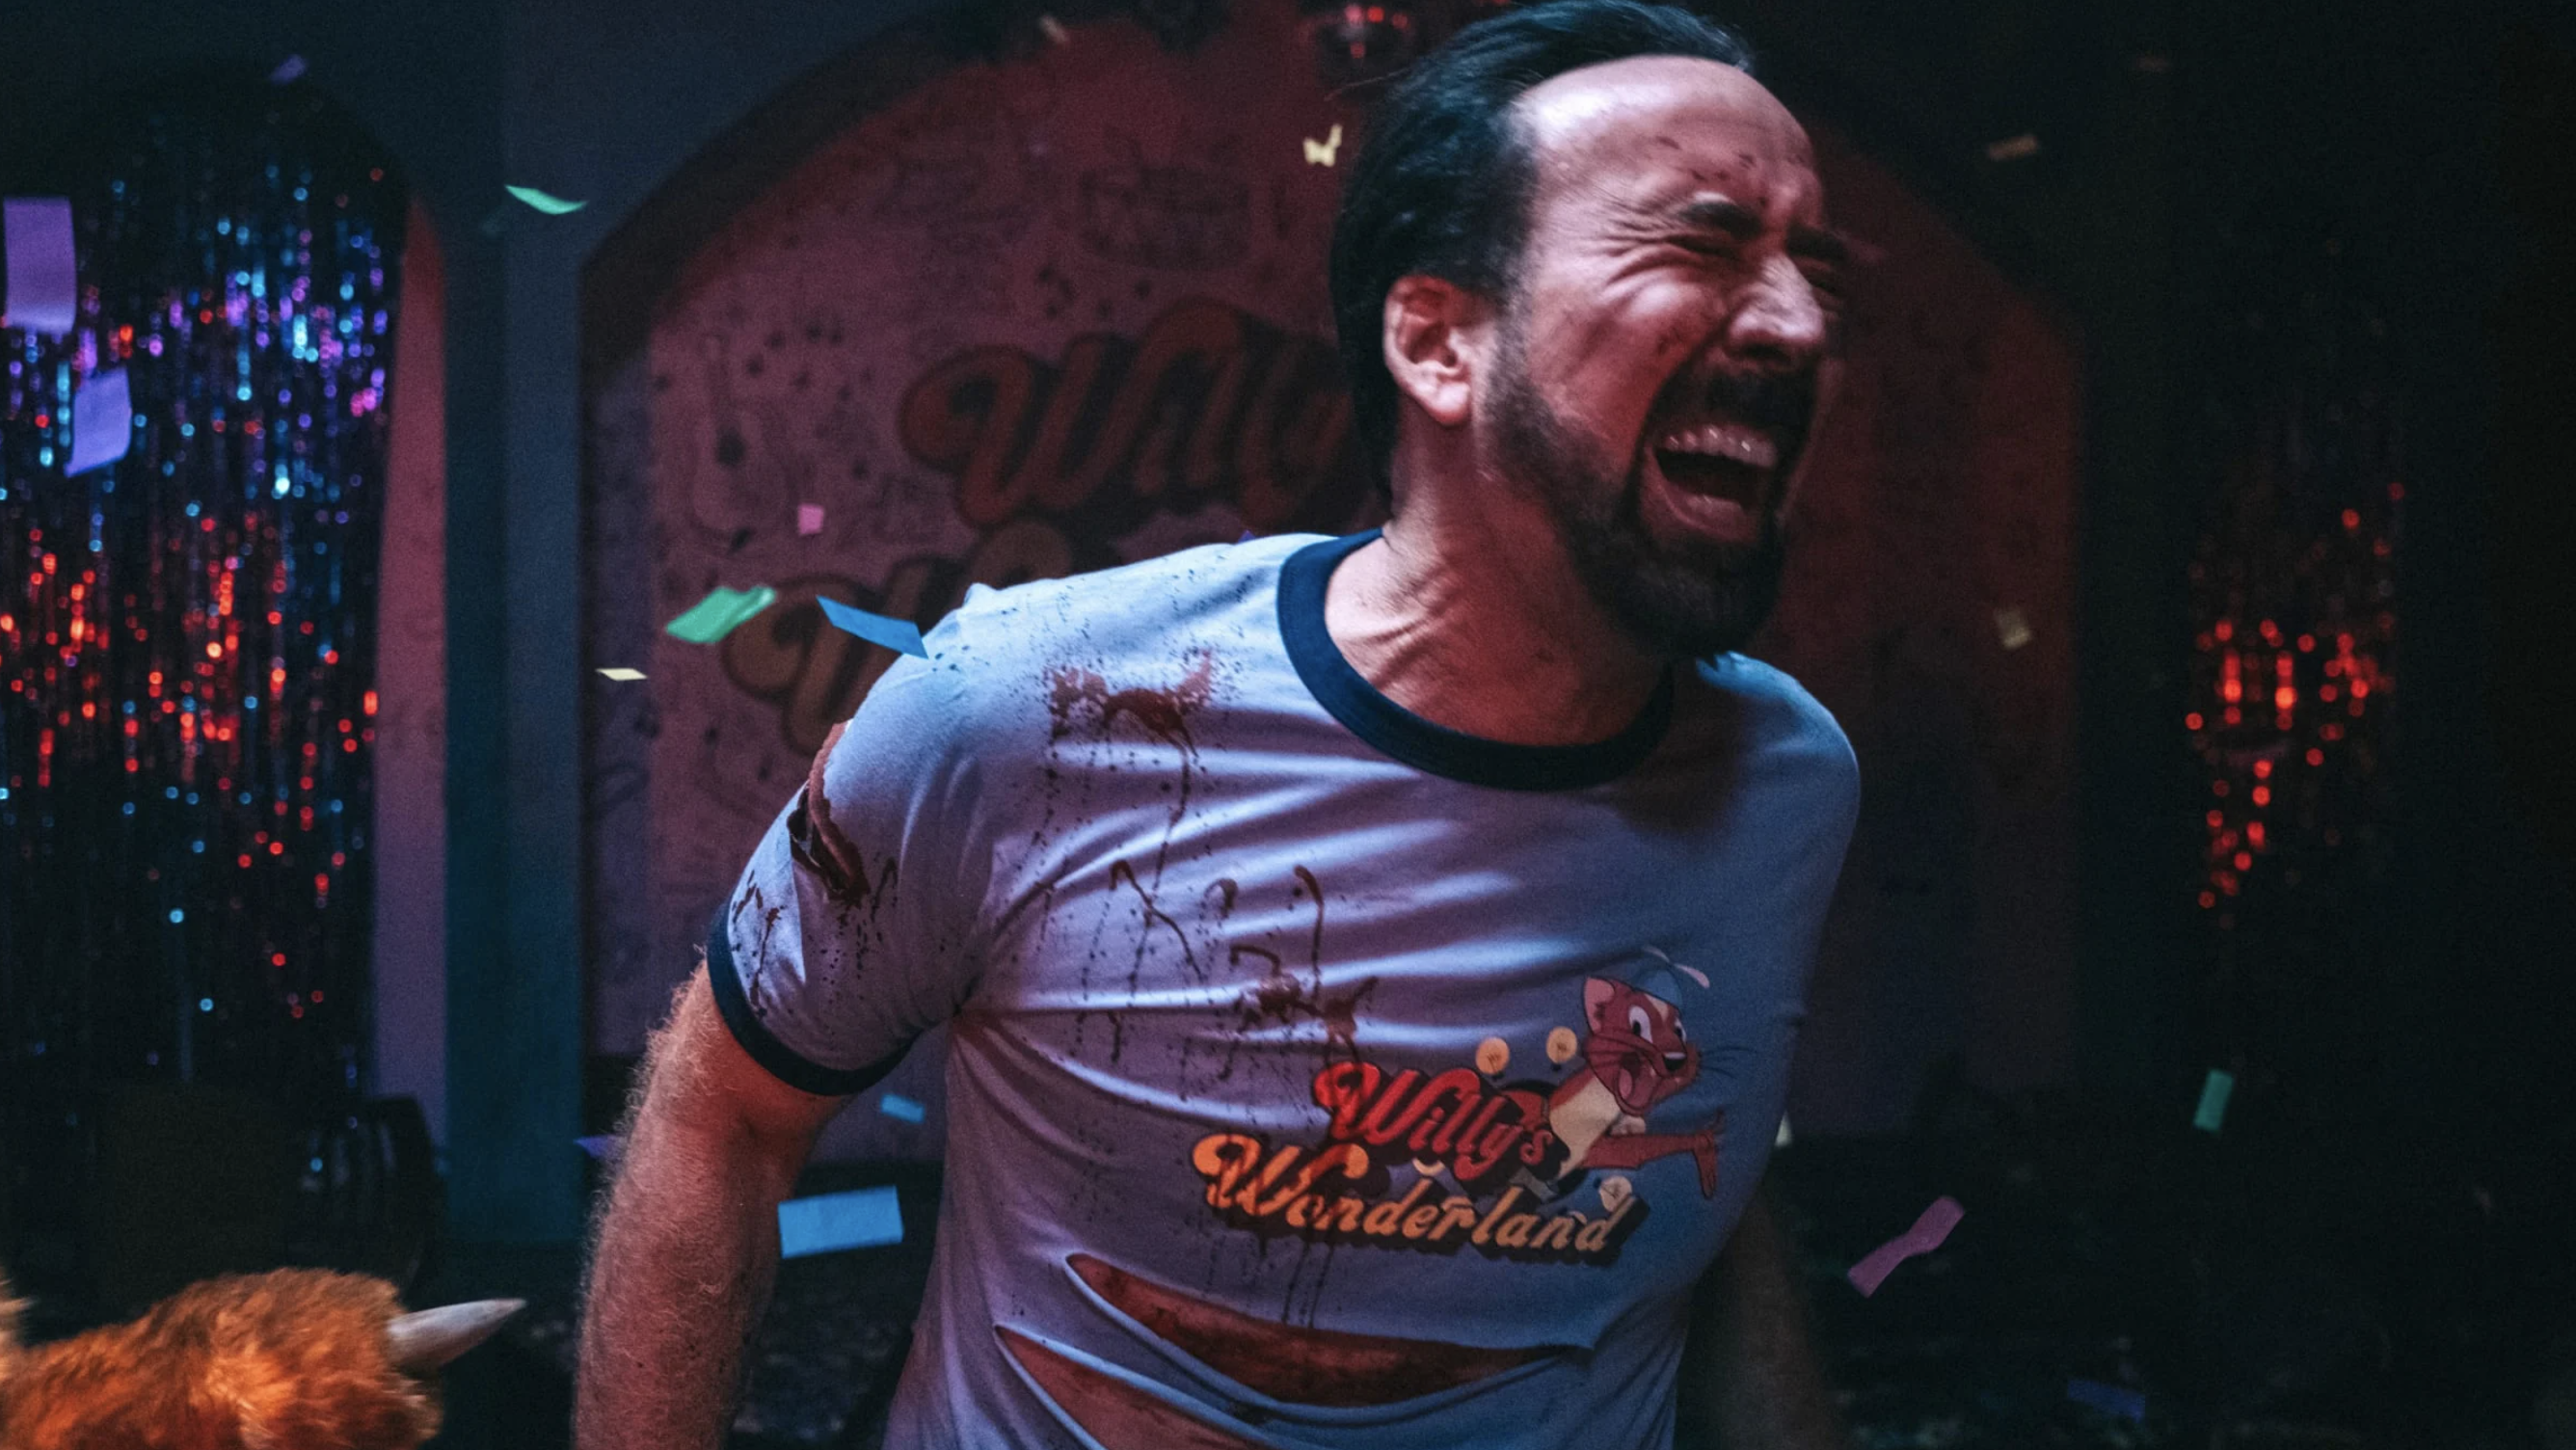 REVIEW: 'Willy's Wonderland' Is a Campy And Violent Good Time With Killer Robots